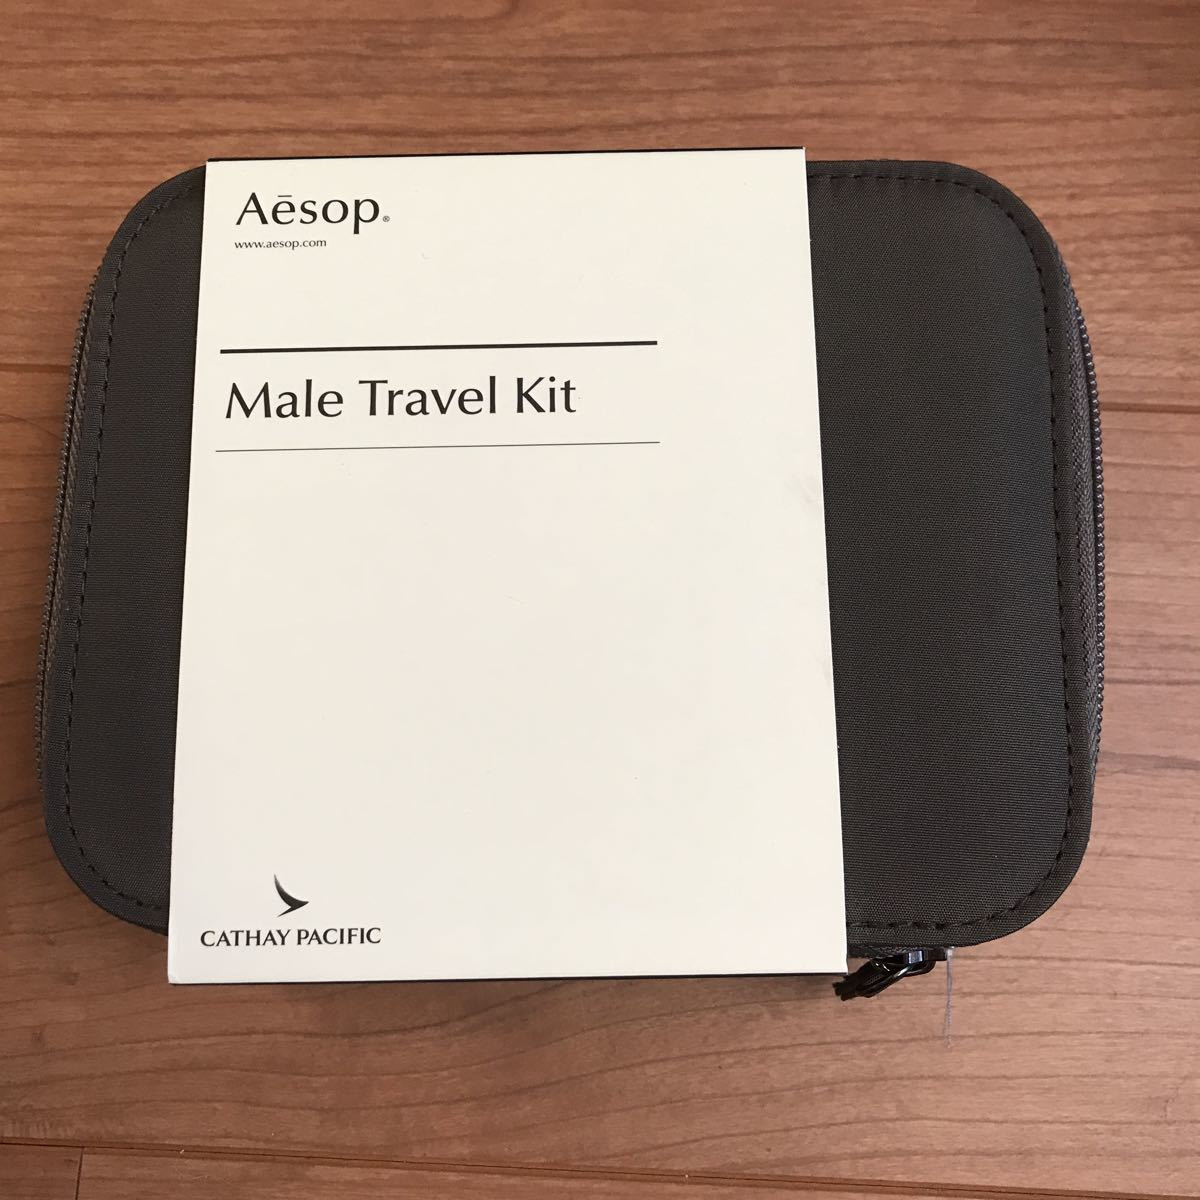 In-flight Gifts/ Amenity Kits Transportation Collectables Cathay Pacific Travel Amenities